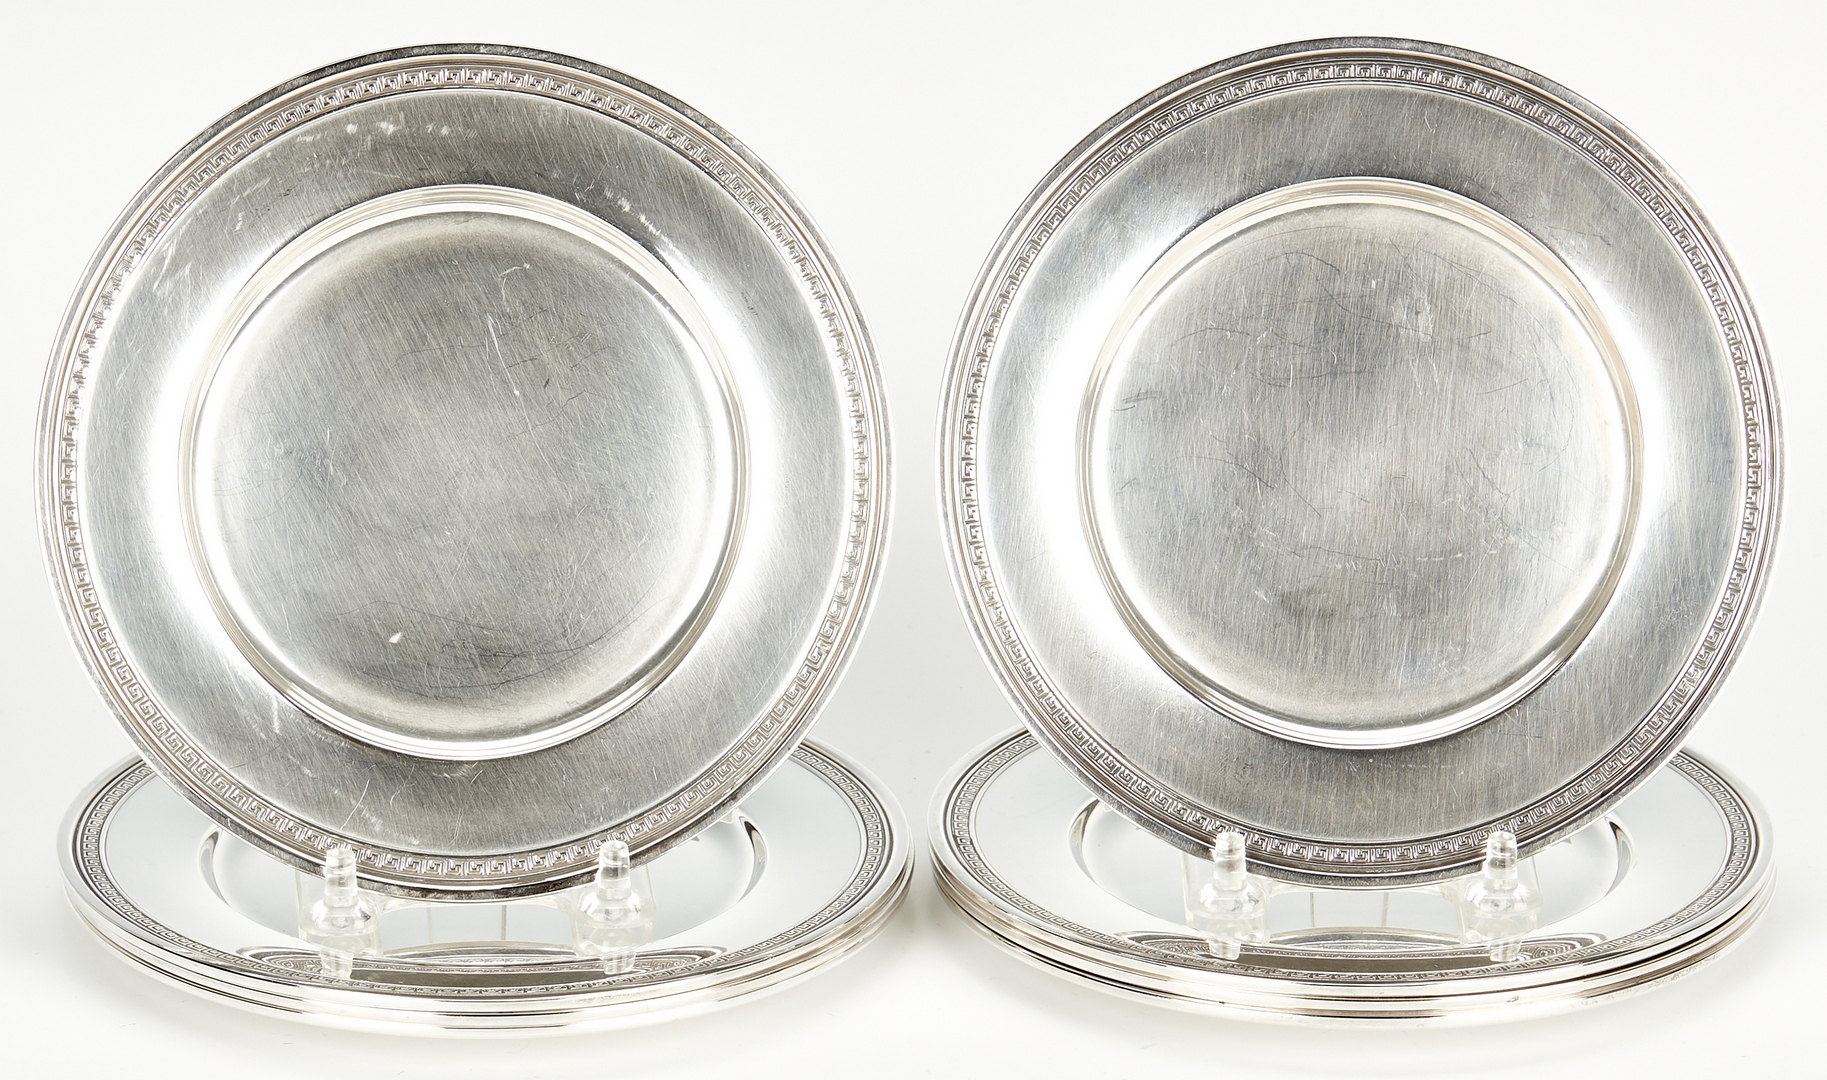 Lot 948: 1 Tiffany bowl plus 8 Gorham bread plates